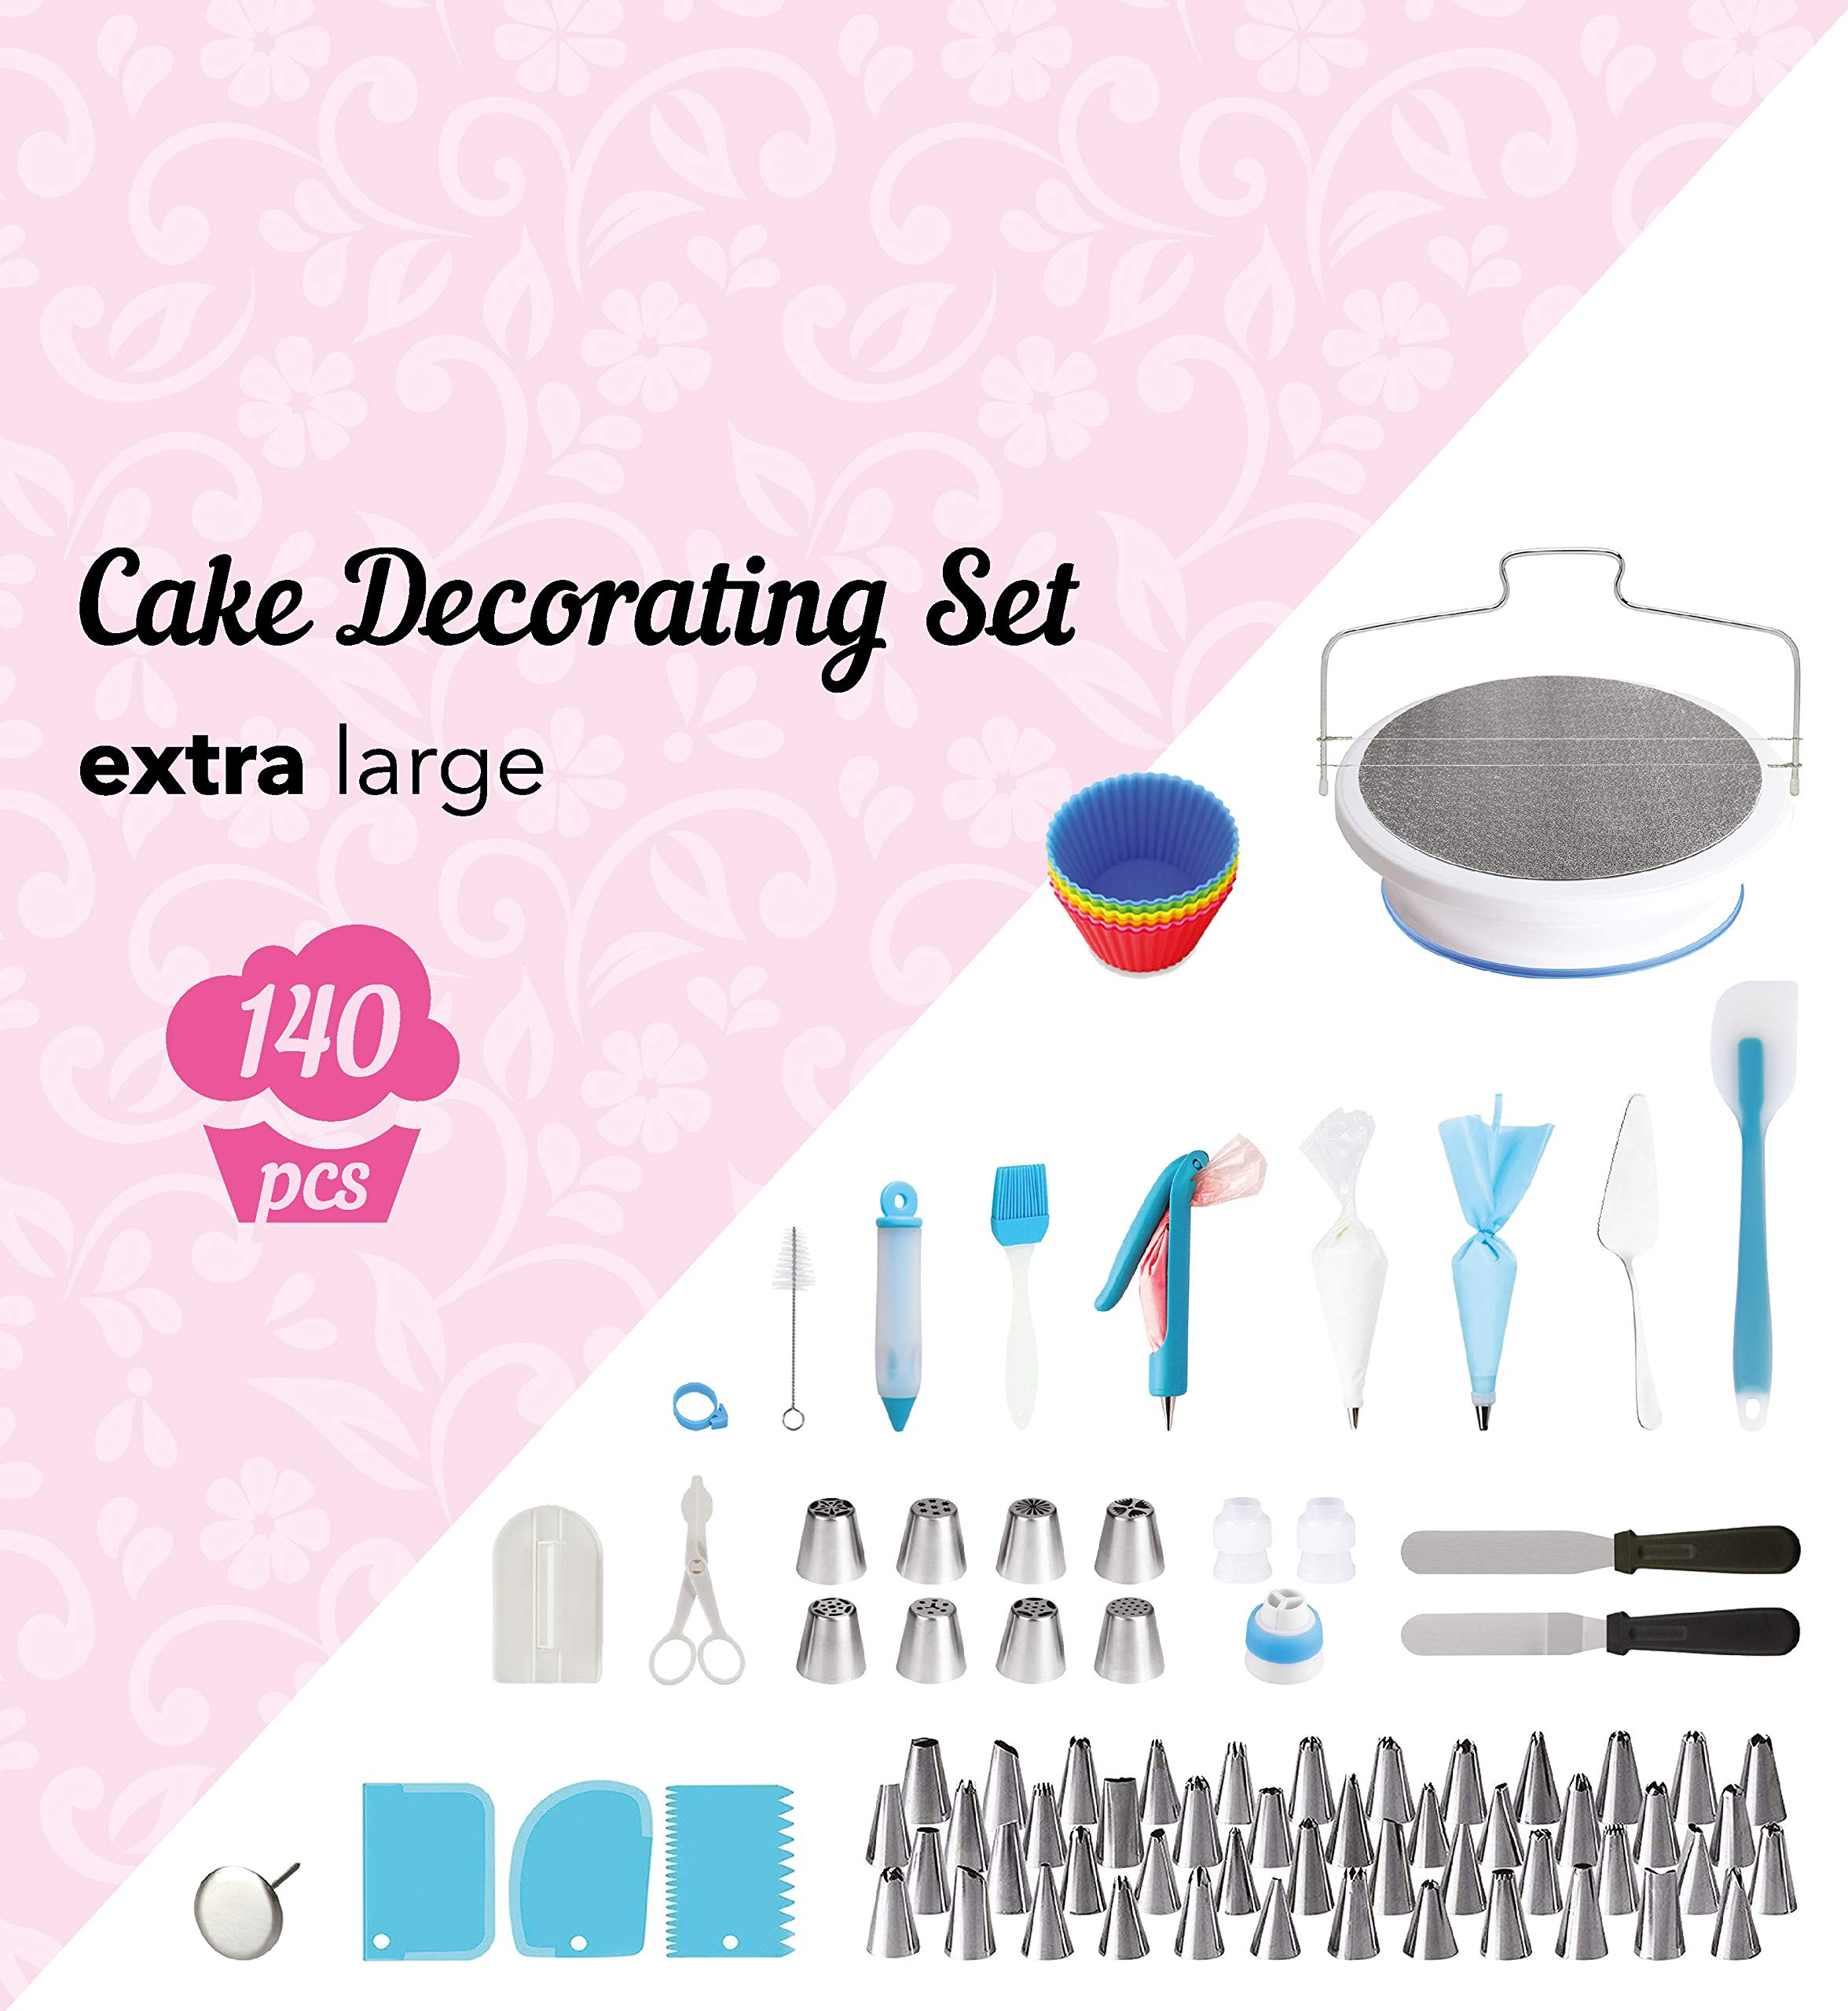 140-Piece Cake Decorating Kit - Silicone and Stainless Steel Baking Supplies and Dessert Making Tools - Bakeware Set with Turntable, Spatula, Russian Nozzles, Pastry Bags, Couplers, Scrapers